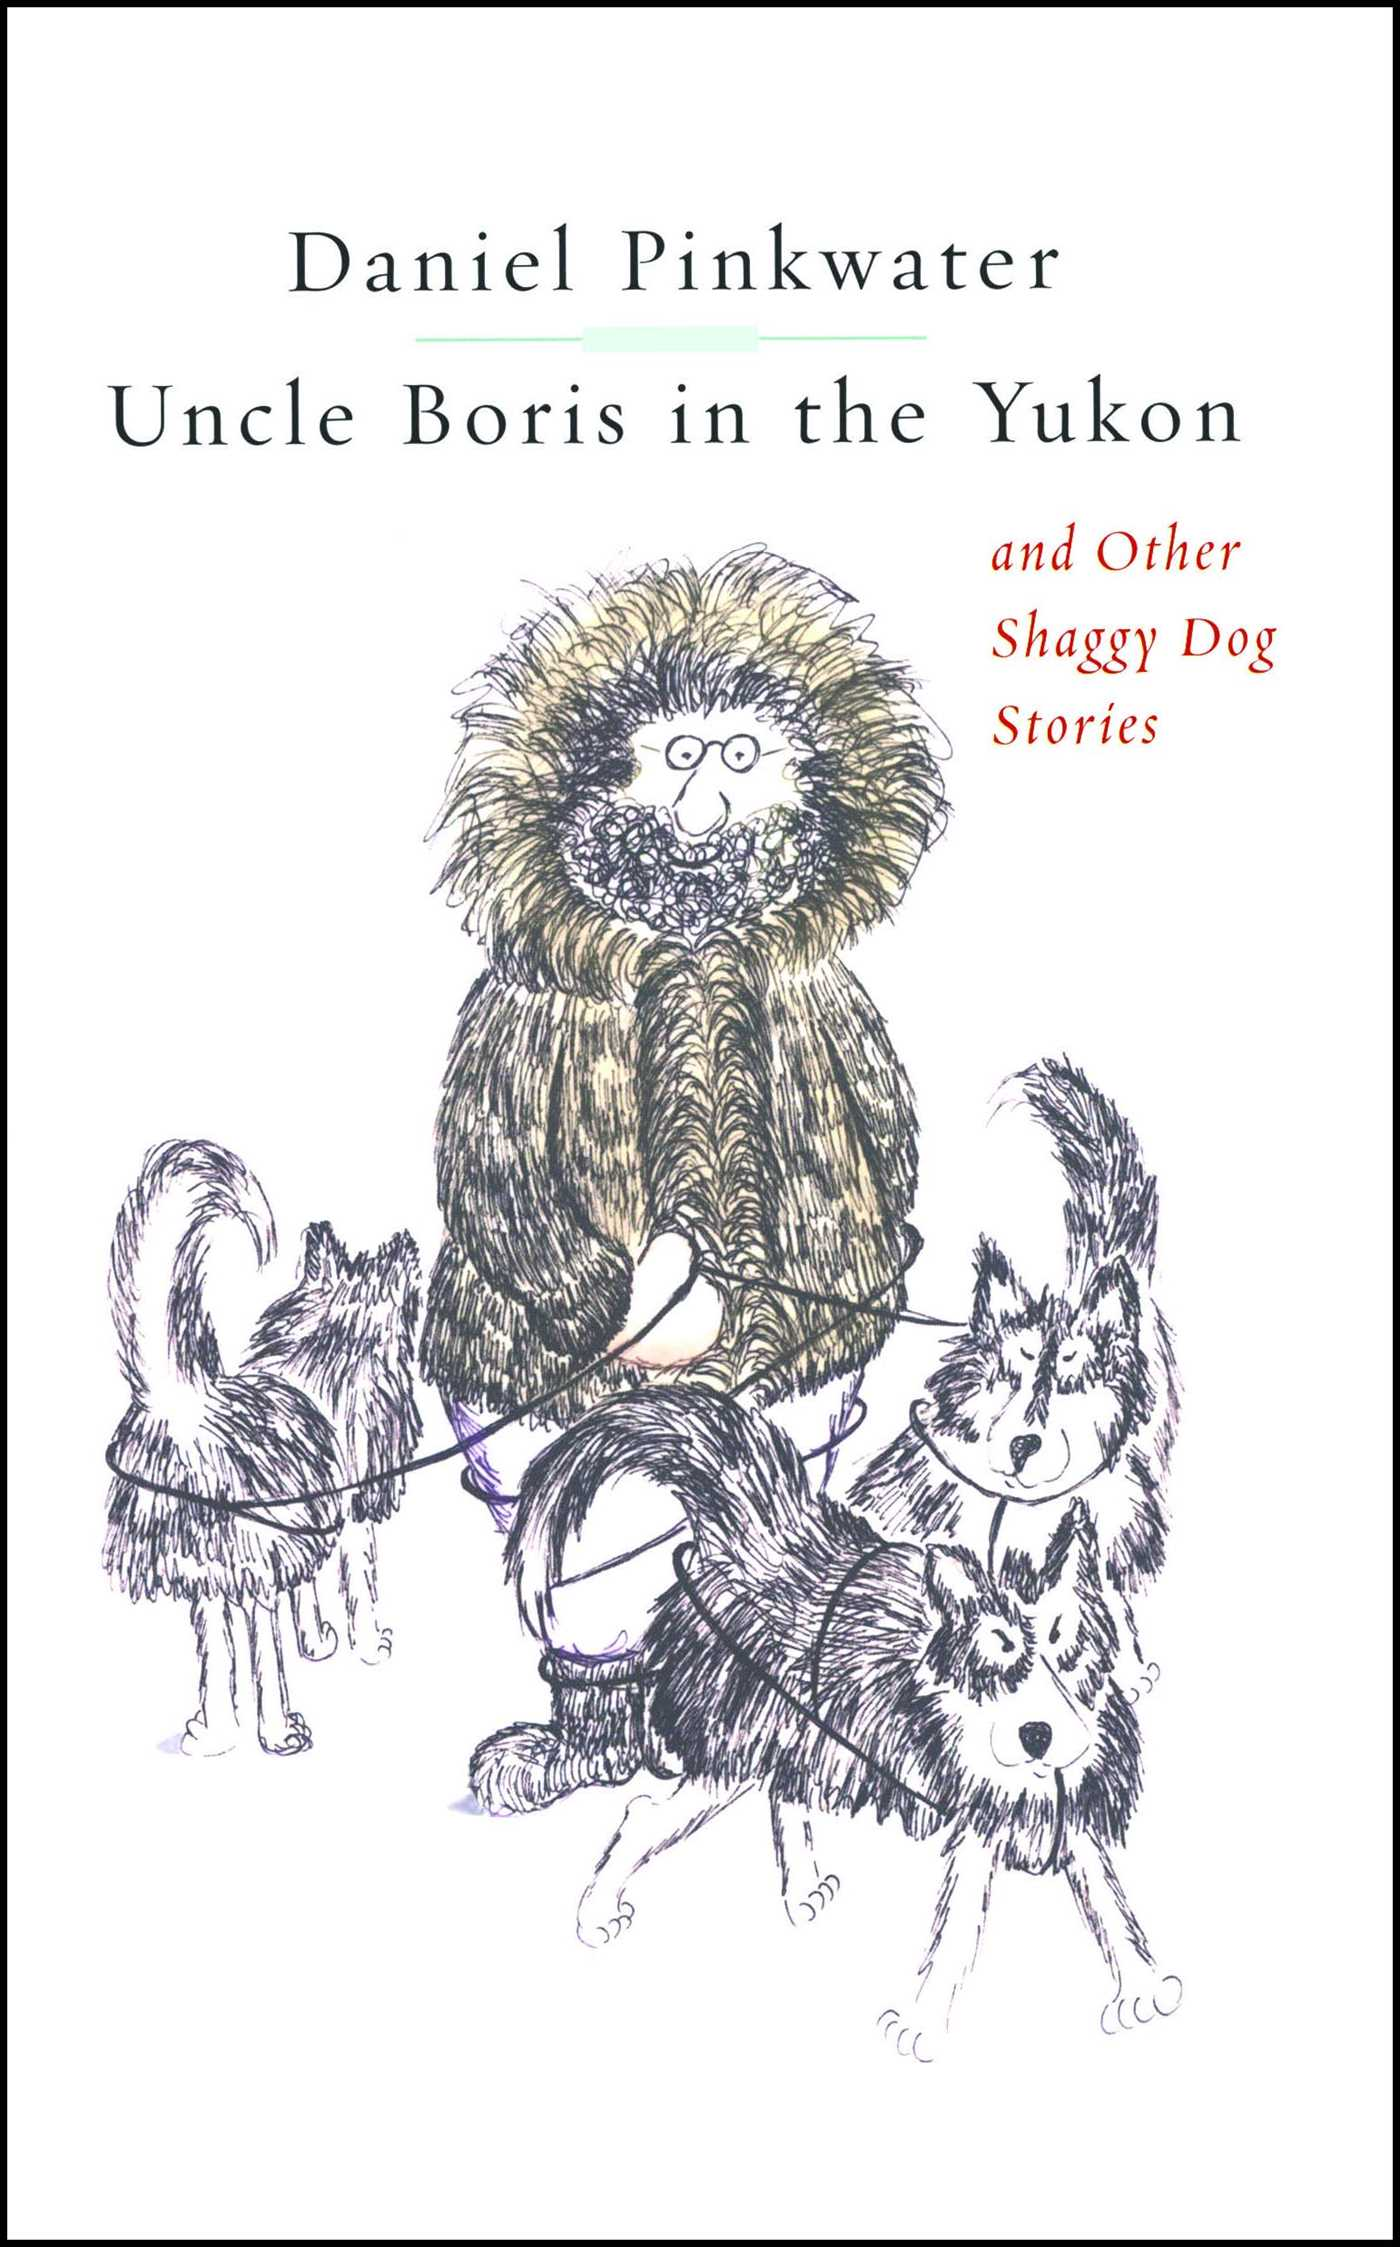 Uncle boris in the yukon and other shaggy dog stor 9781451646603 hr